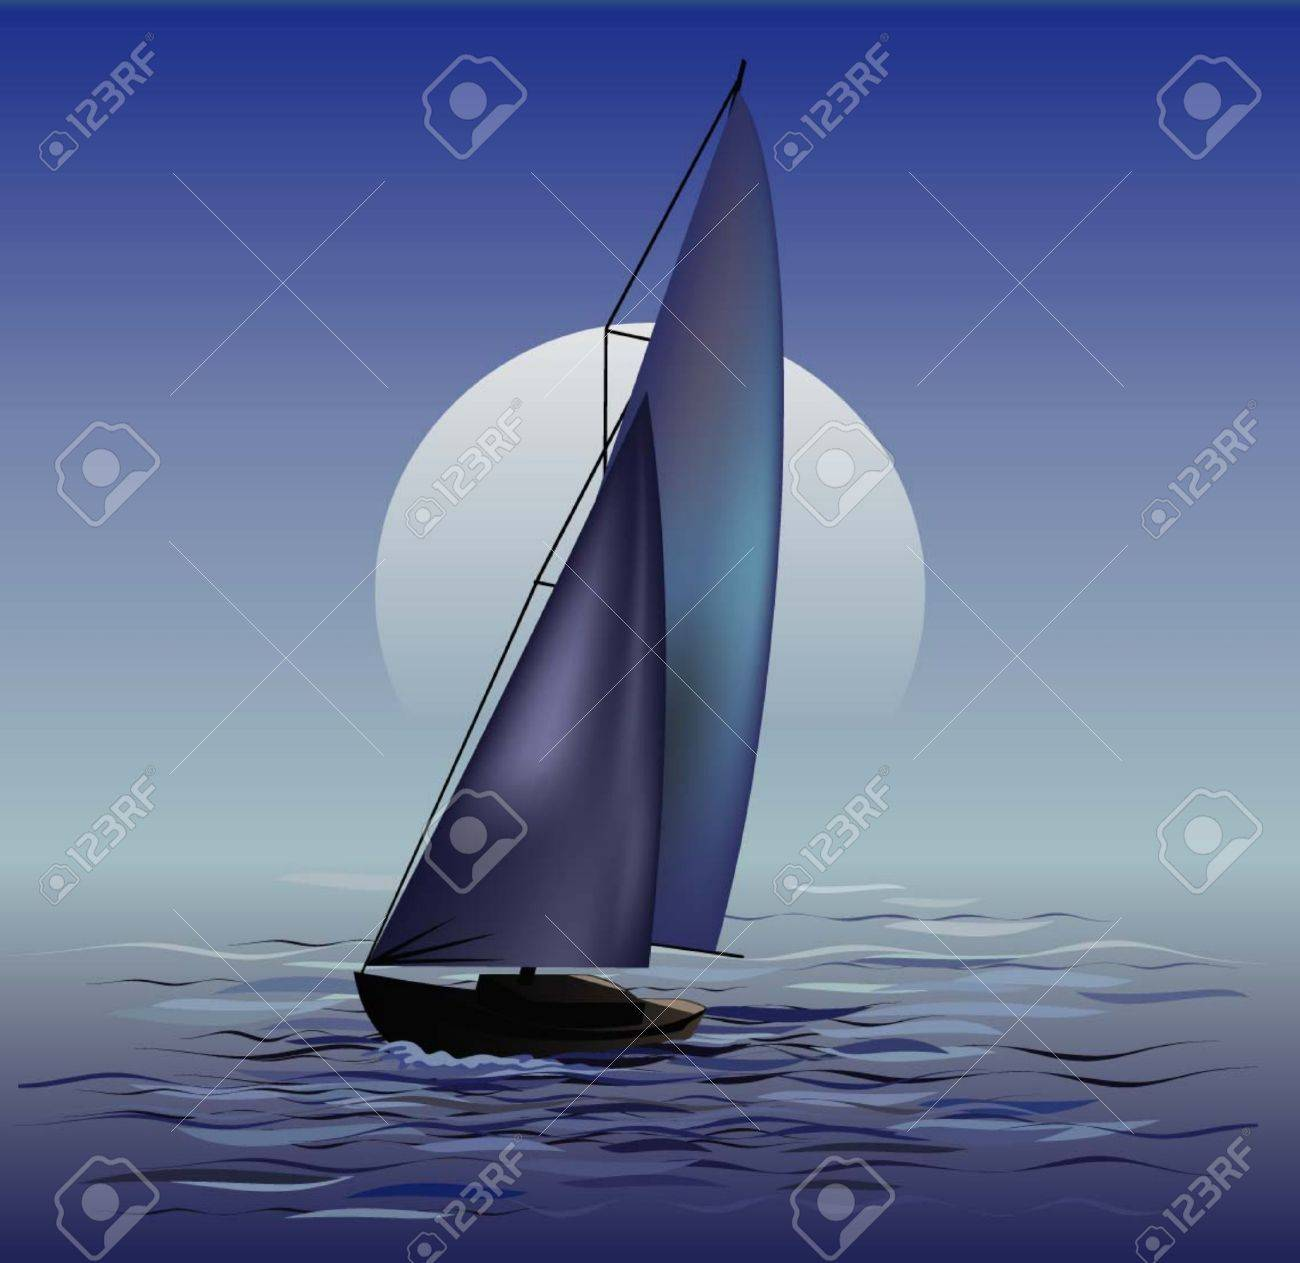 Sailing boat in moonrise Stock Vector - 6657208